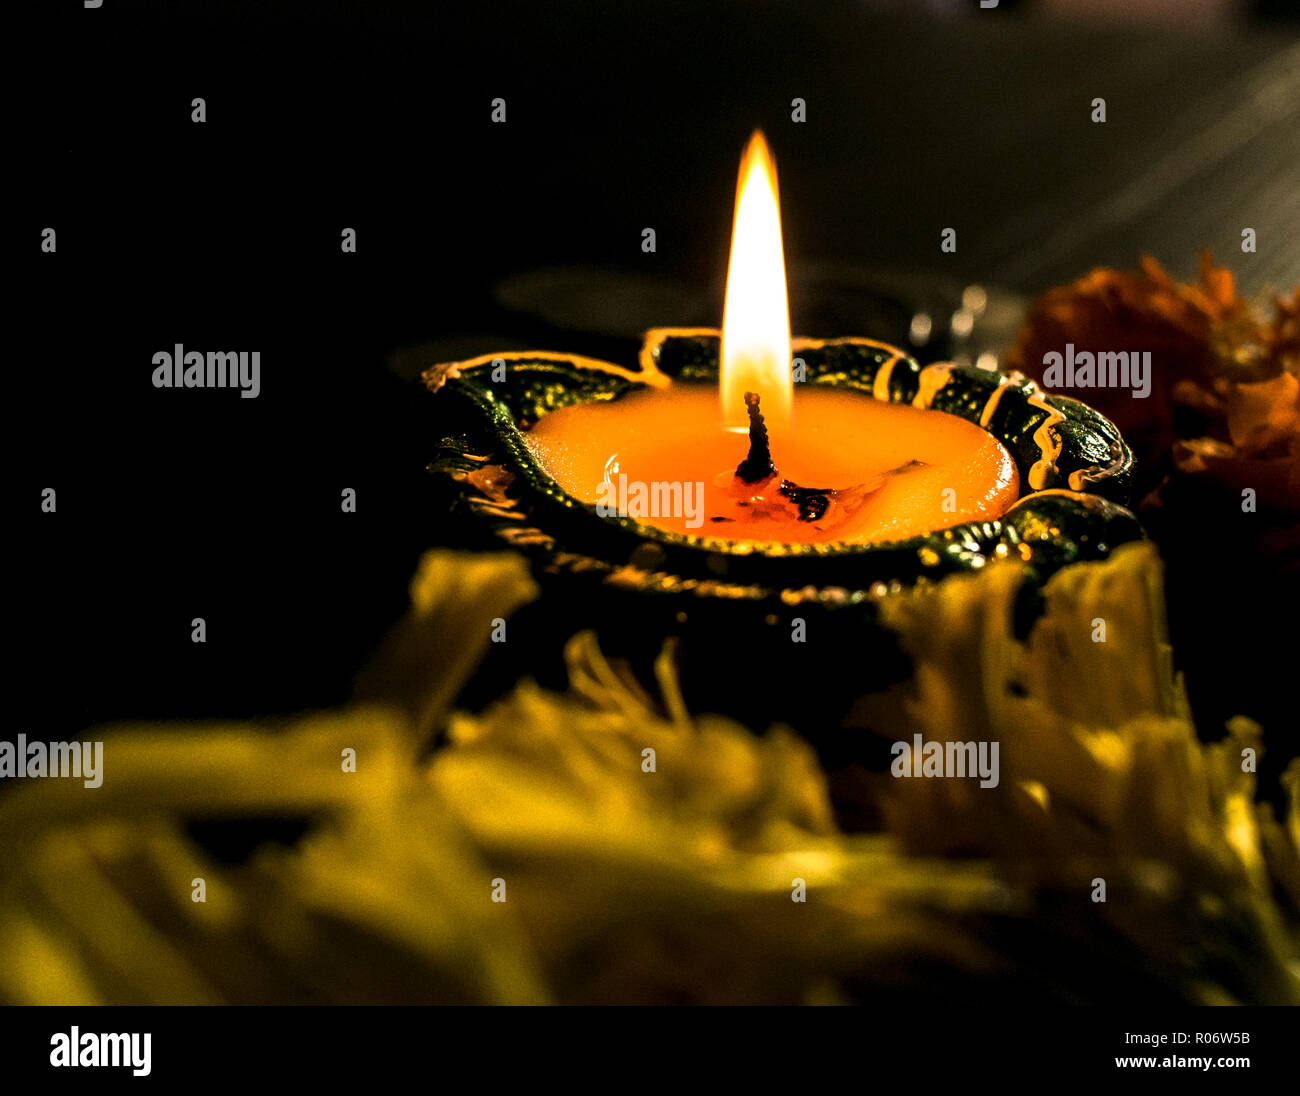 Isolated diya/lamp placed on table Stock Photo